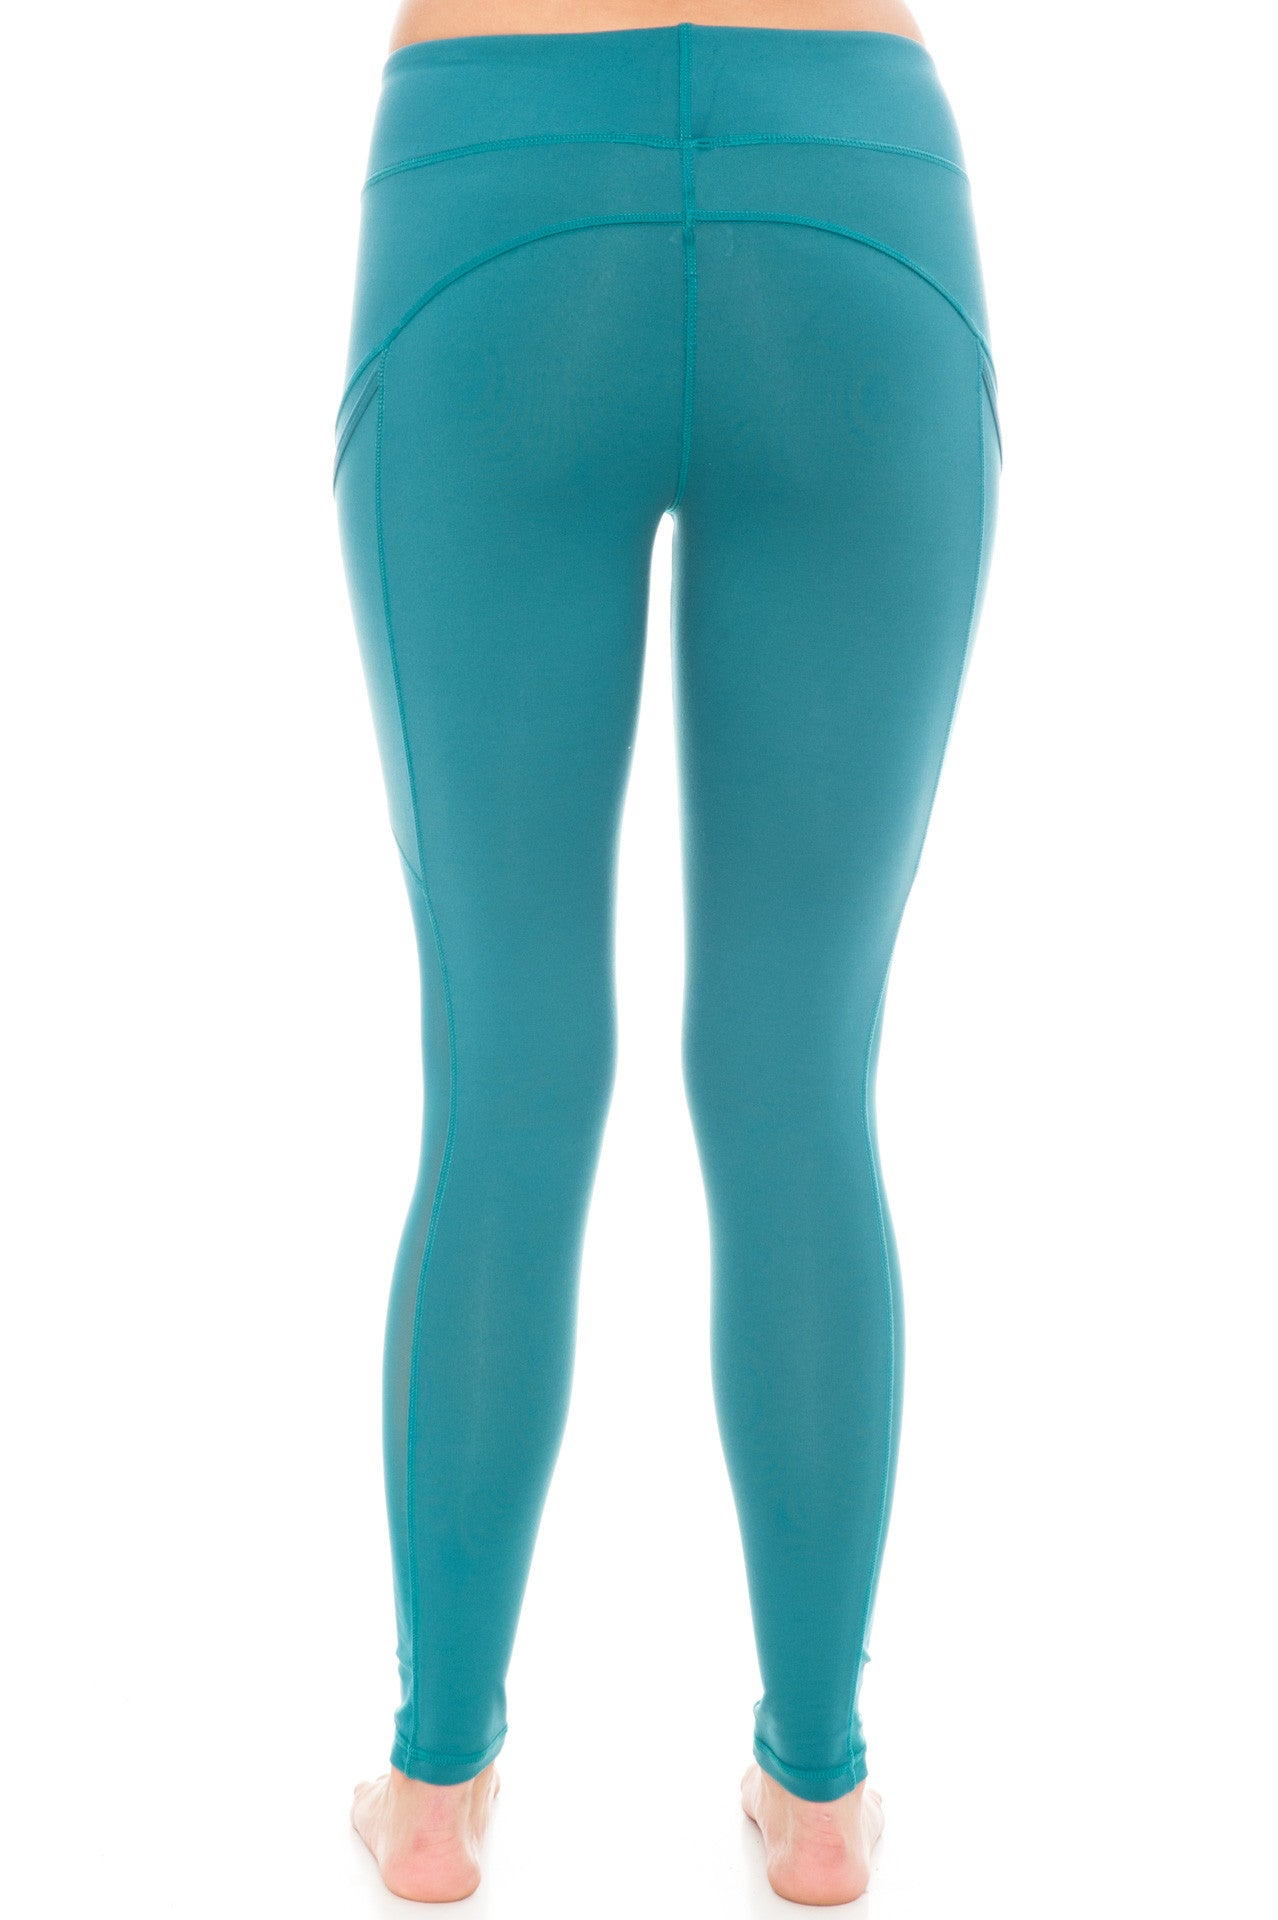 Legging - Side Mesh by Motion by Coalition